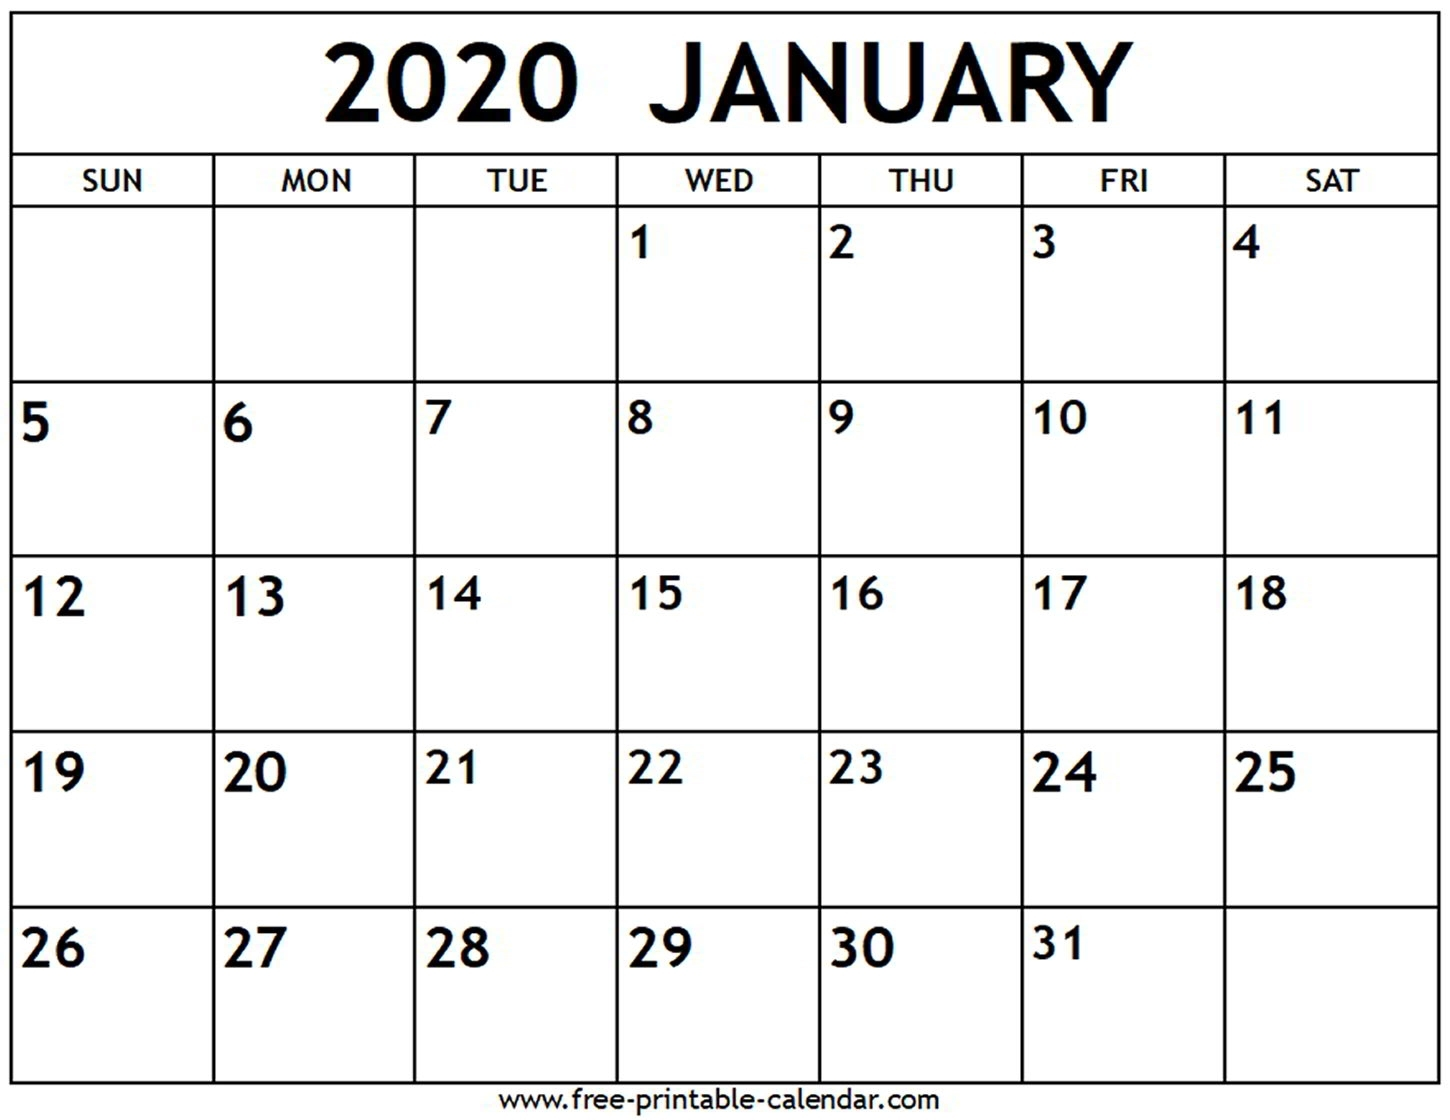 Free Monthly Calendar January 2020